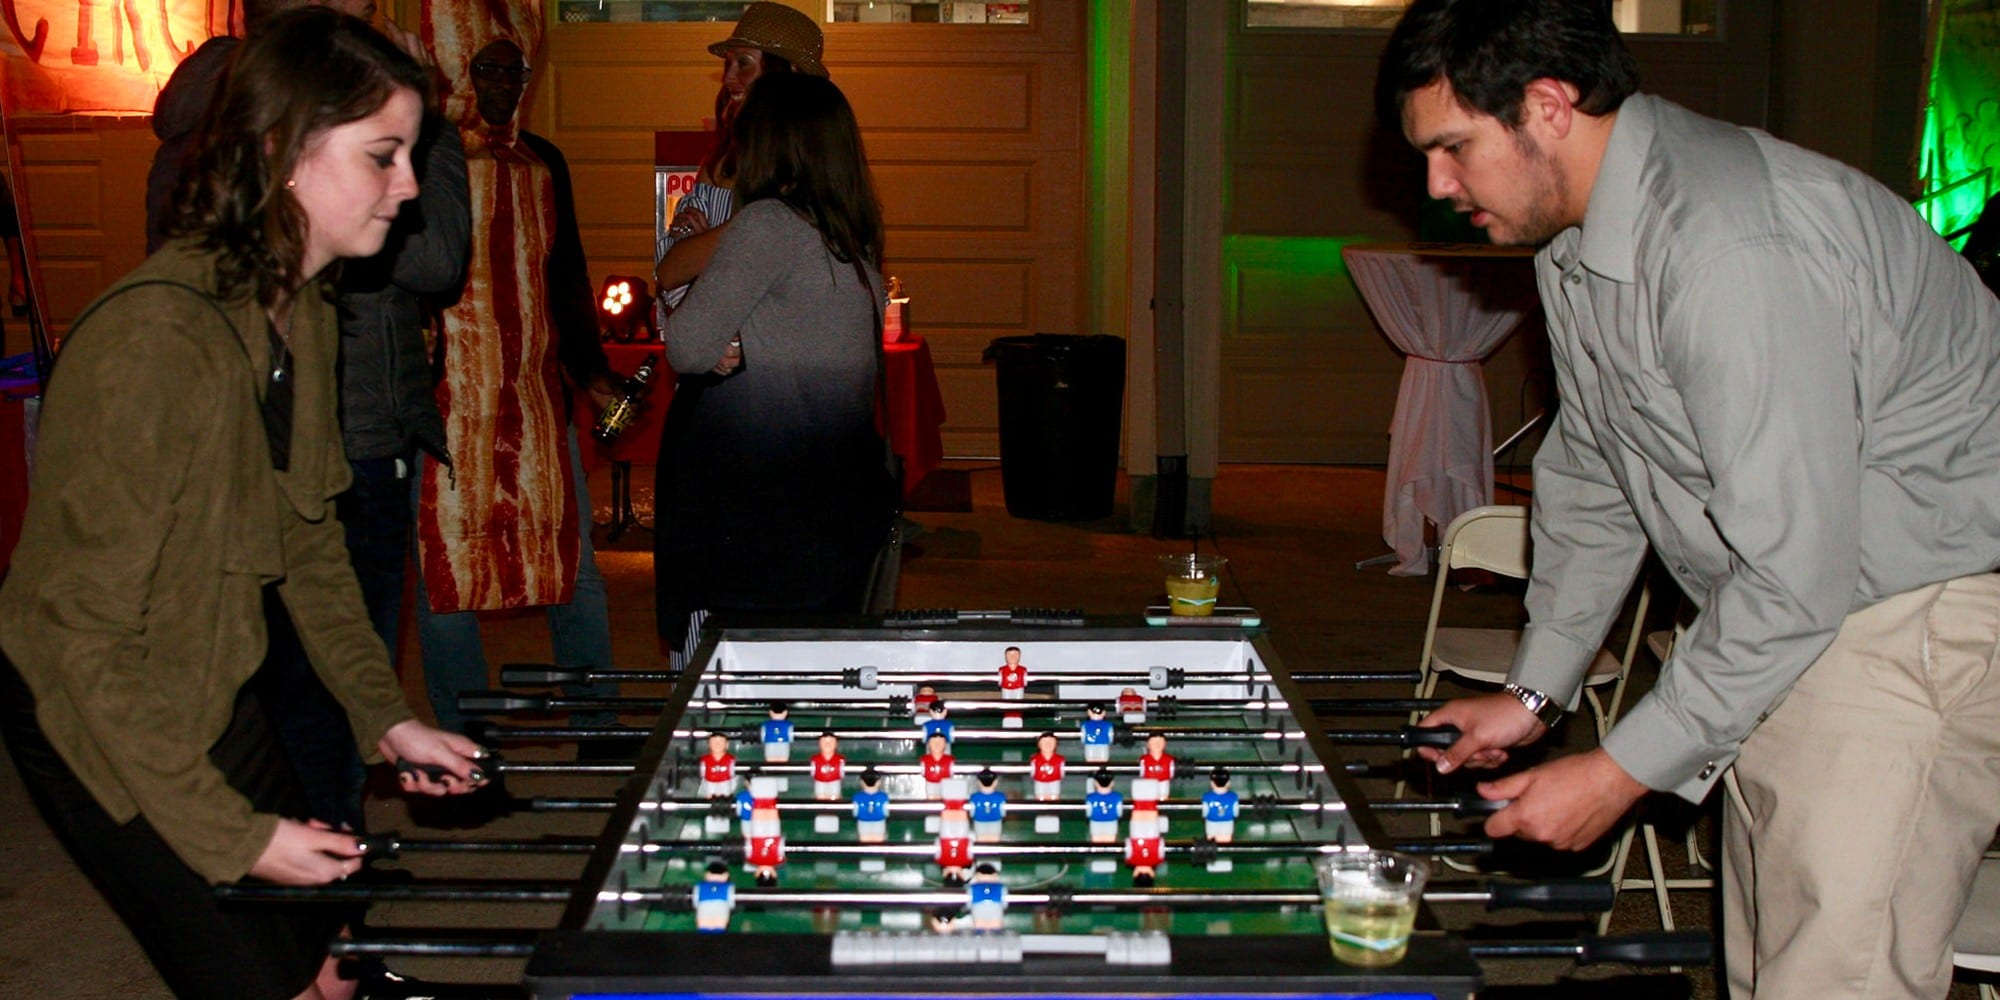 Arsenal vs. Manchester United Foosball table from Arcades Market.